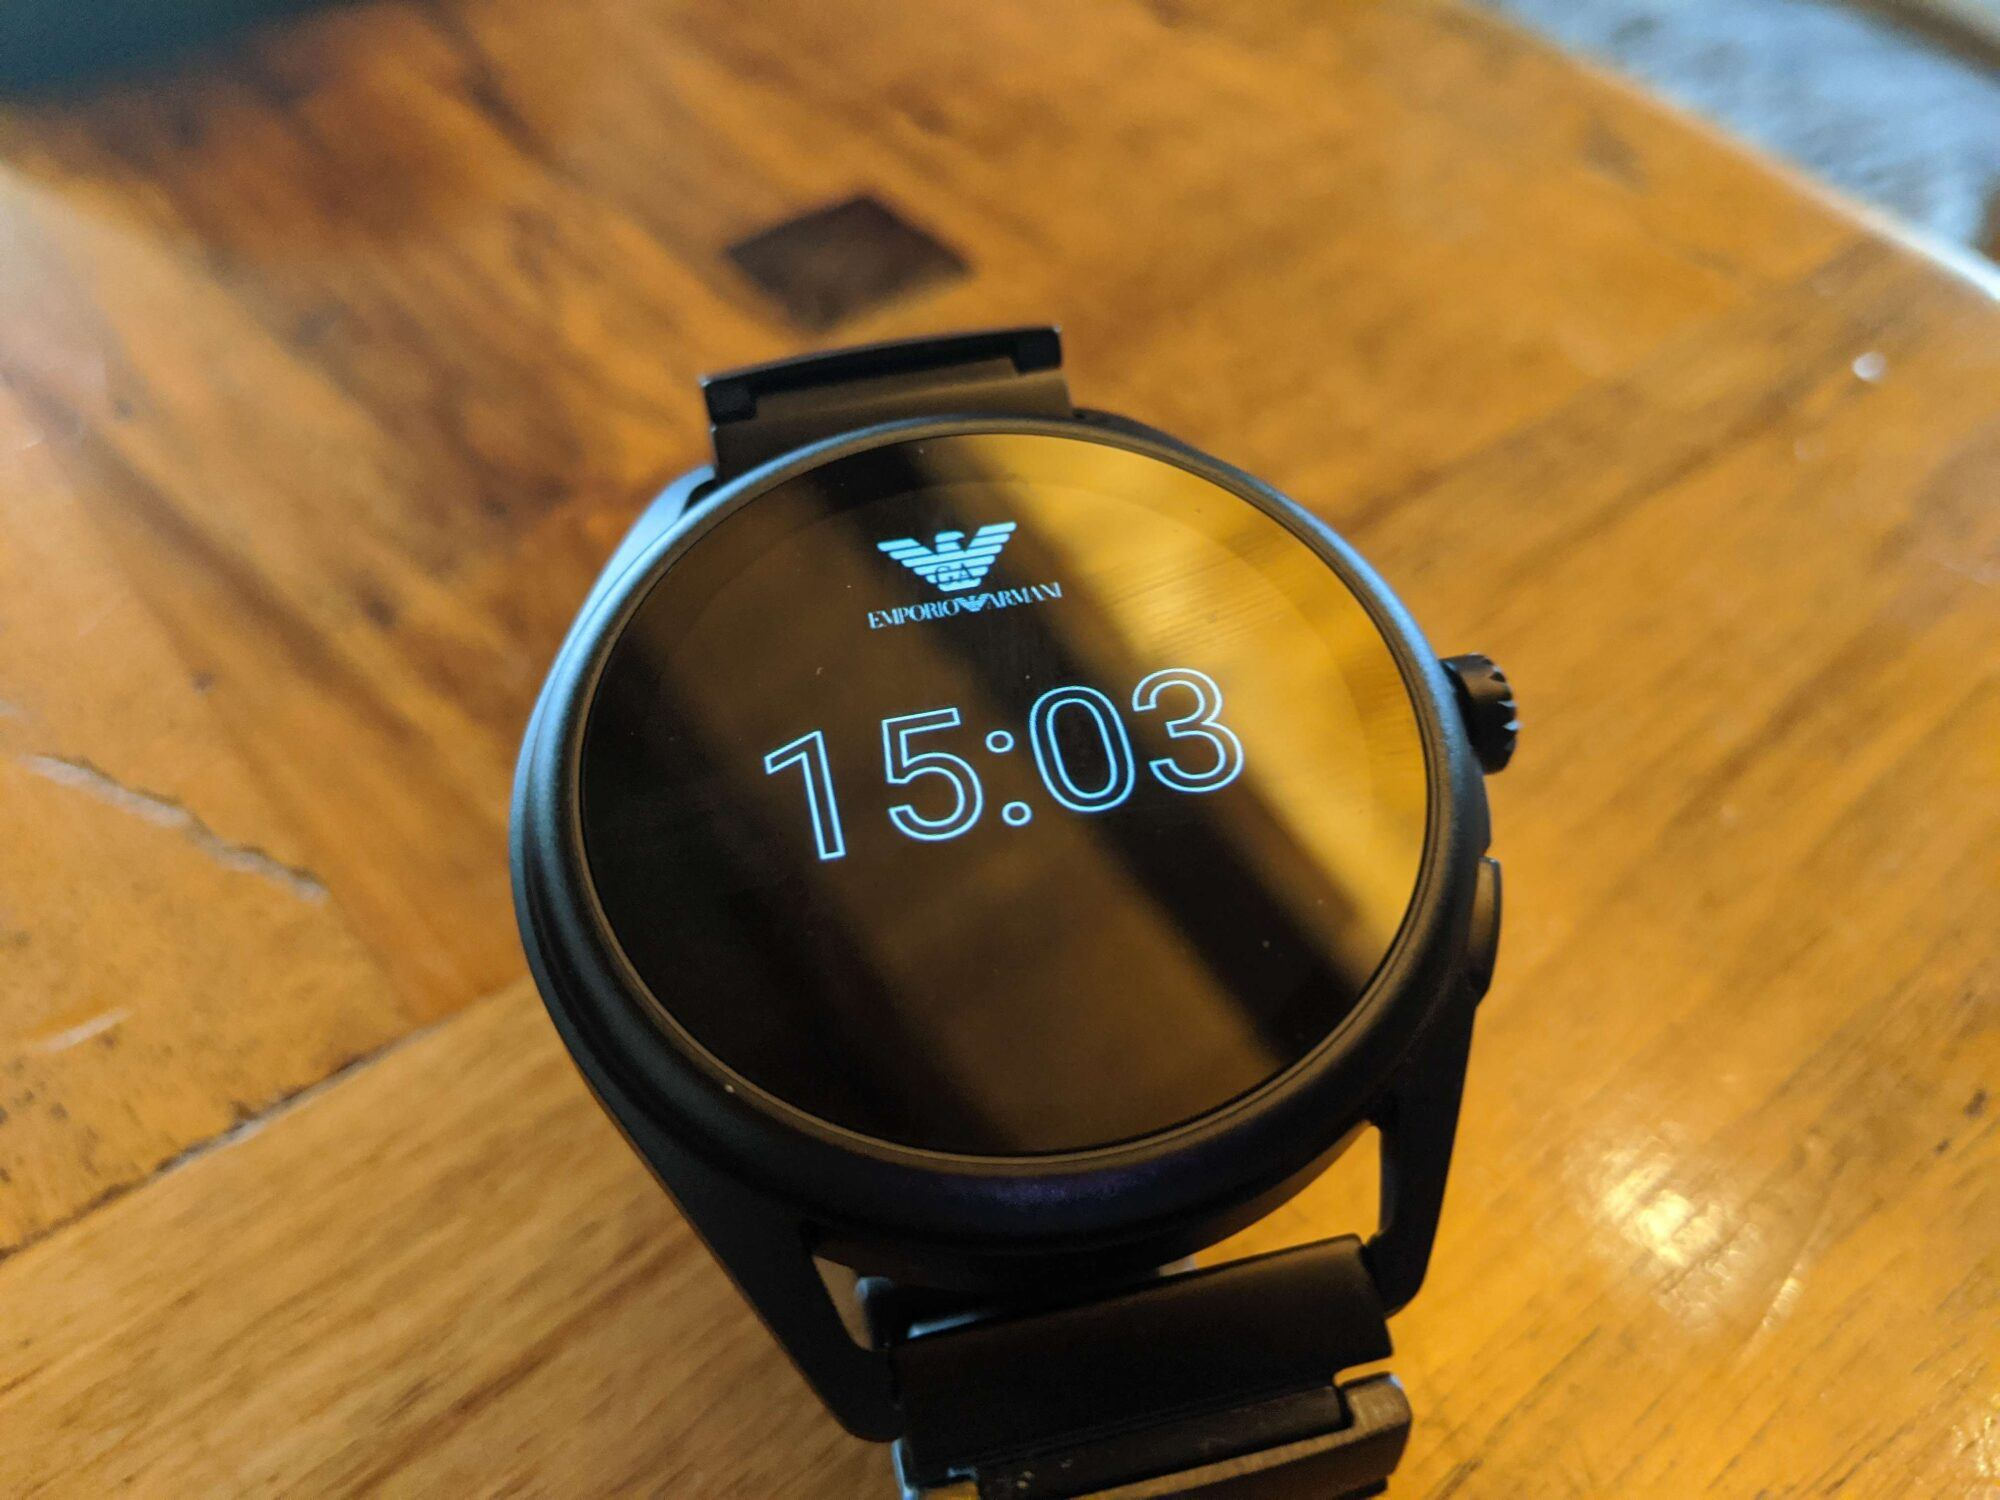 Emporio Armani smartwatch connected, fossil